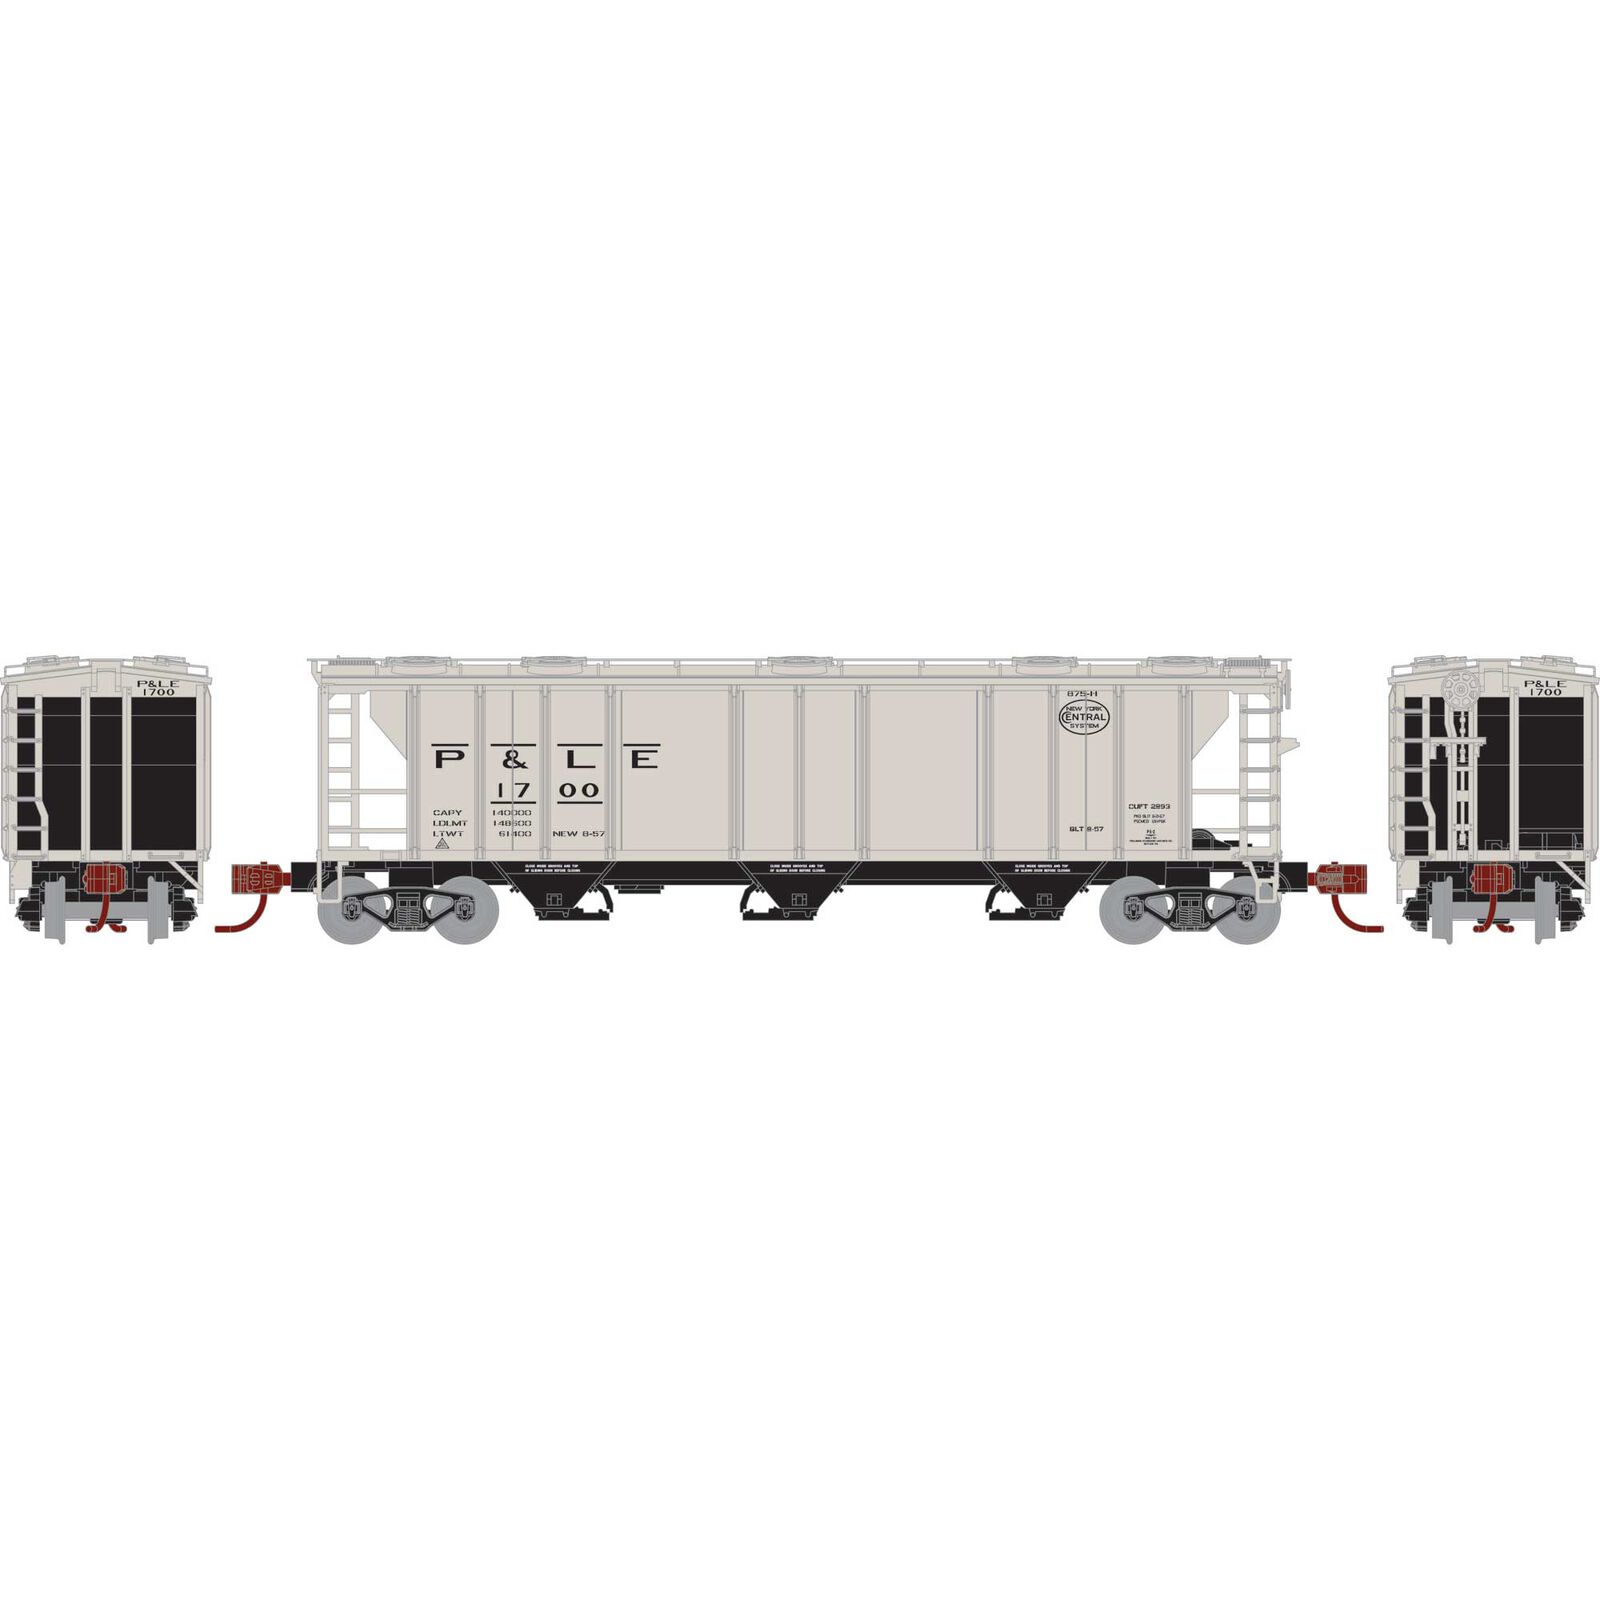 N PS-2 2893 3-Bay Covered Hopper, P&LE #1700